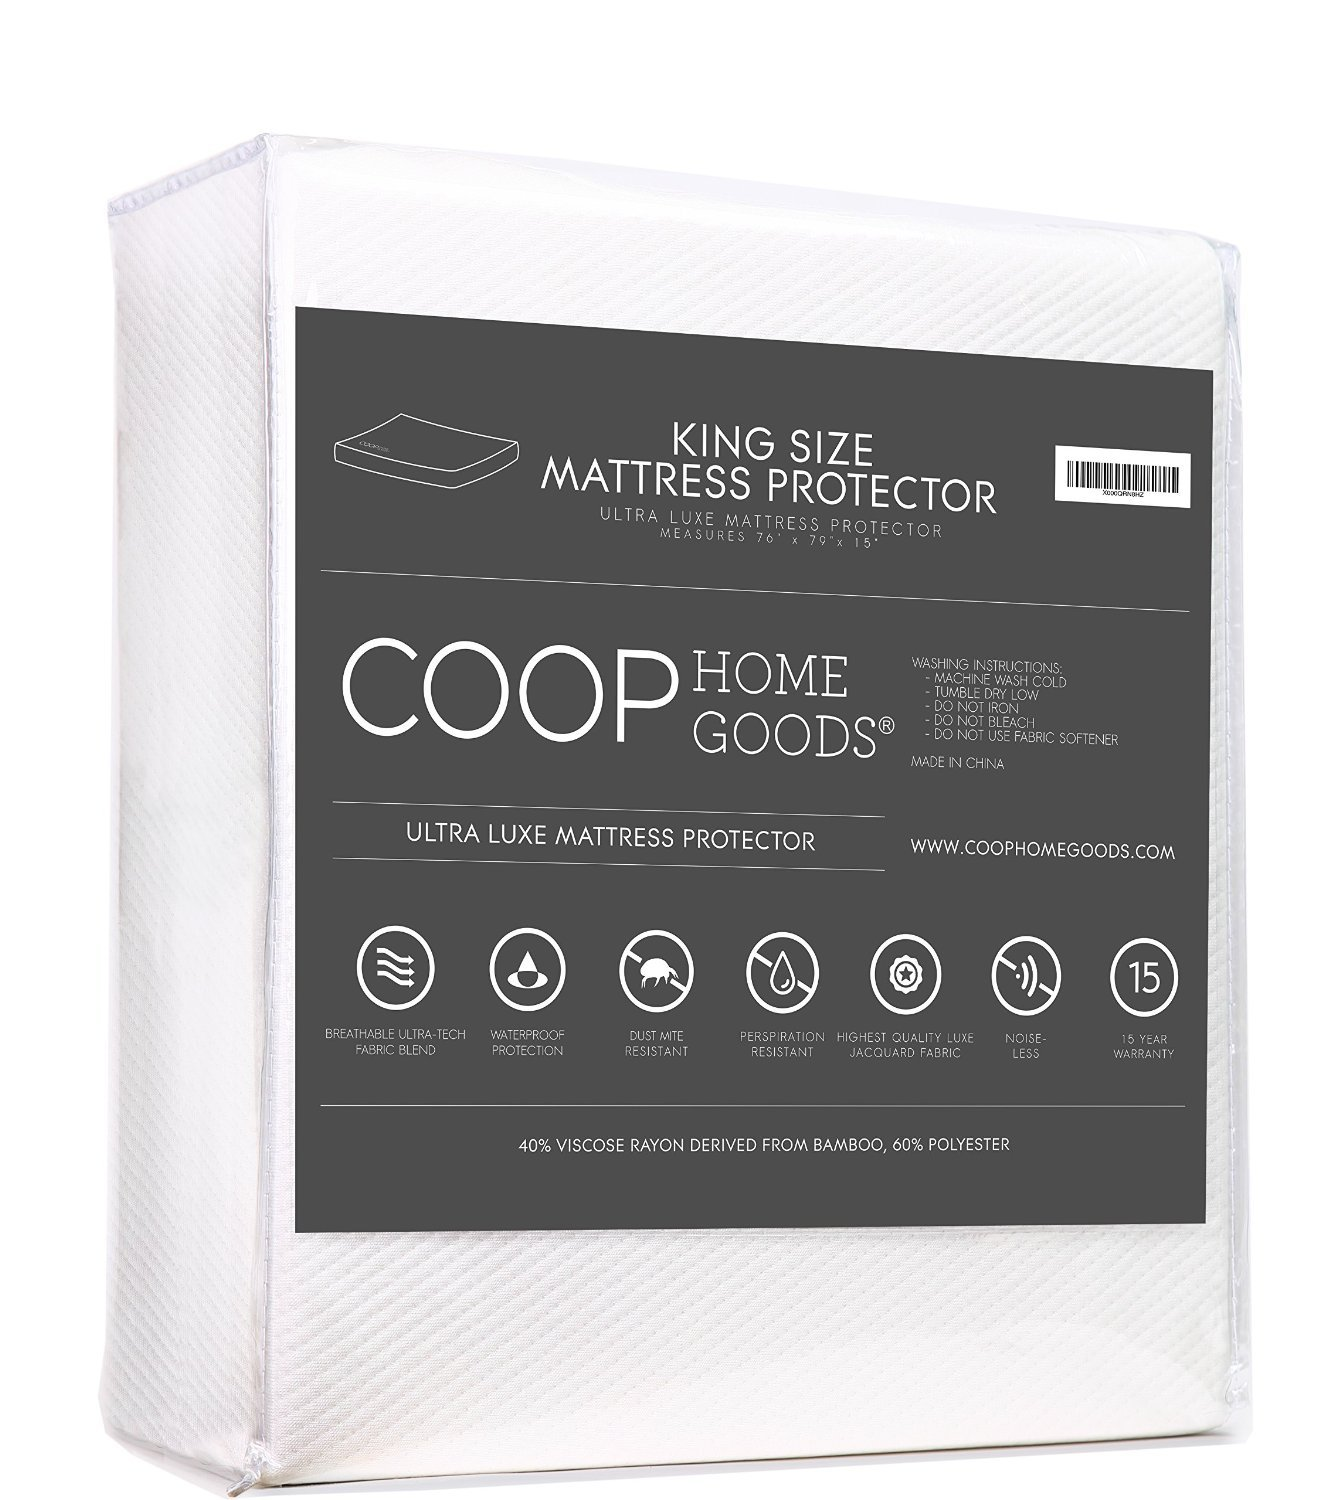 Amazon.com: Lulltra Bamboo derived Viscose Rayon Mattress Pad Protector  Cover by Coop Home Goods - Cooling Waterproof Hypoallergenic Topper - King  ...